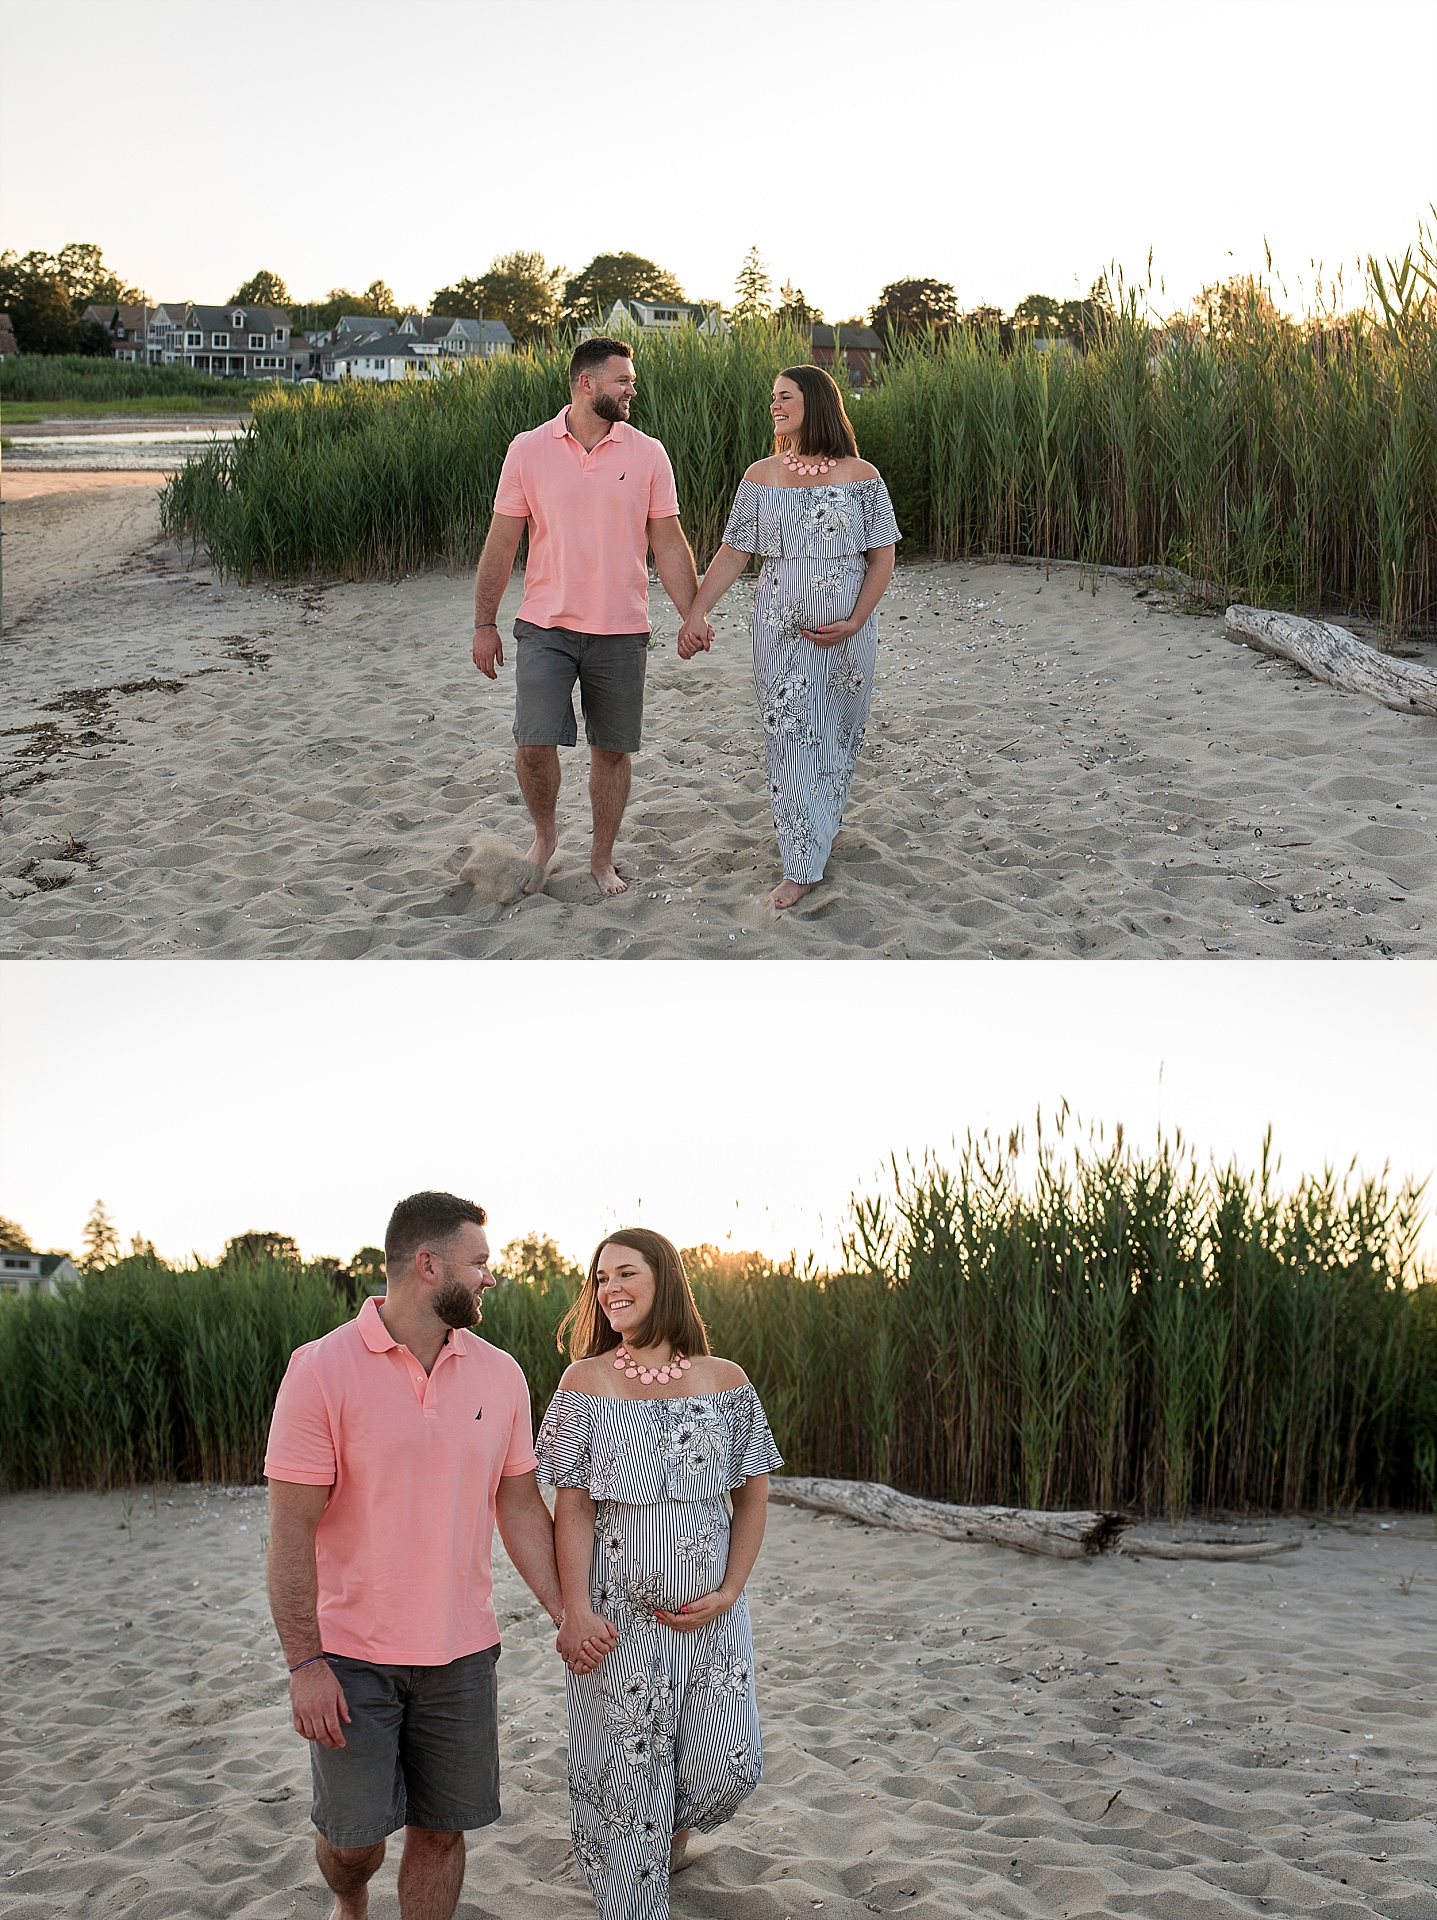 Couple holding hands at the beach in Old Saybrook, CT during their Connecticut maternity photography session.